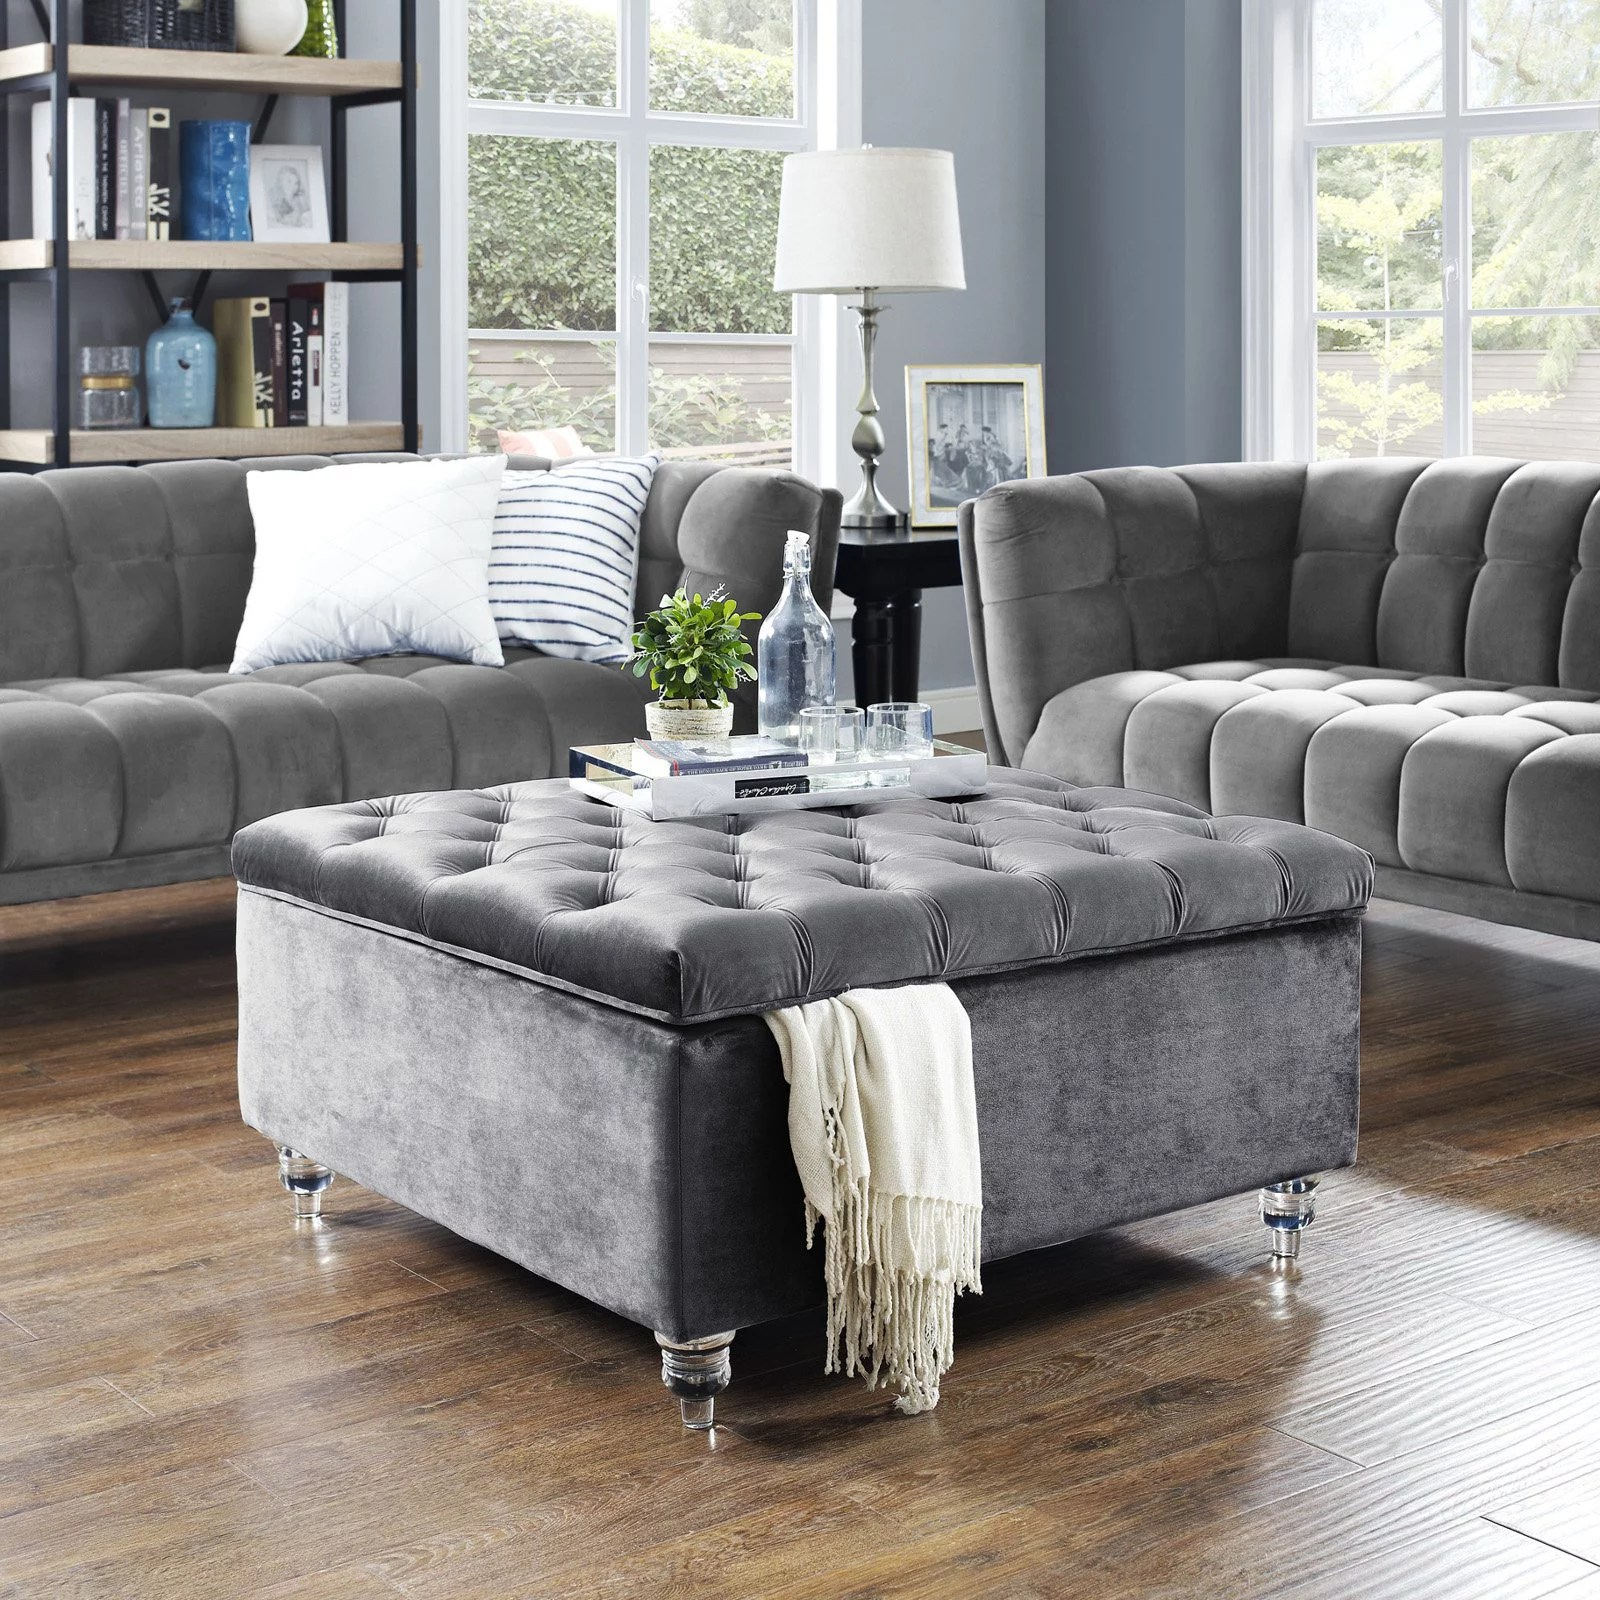 inspired home clarissa velvet storage ottoman cocktail coffee table square tufted grey